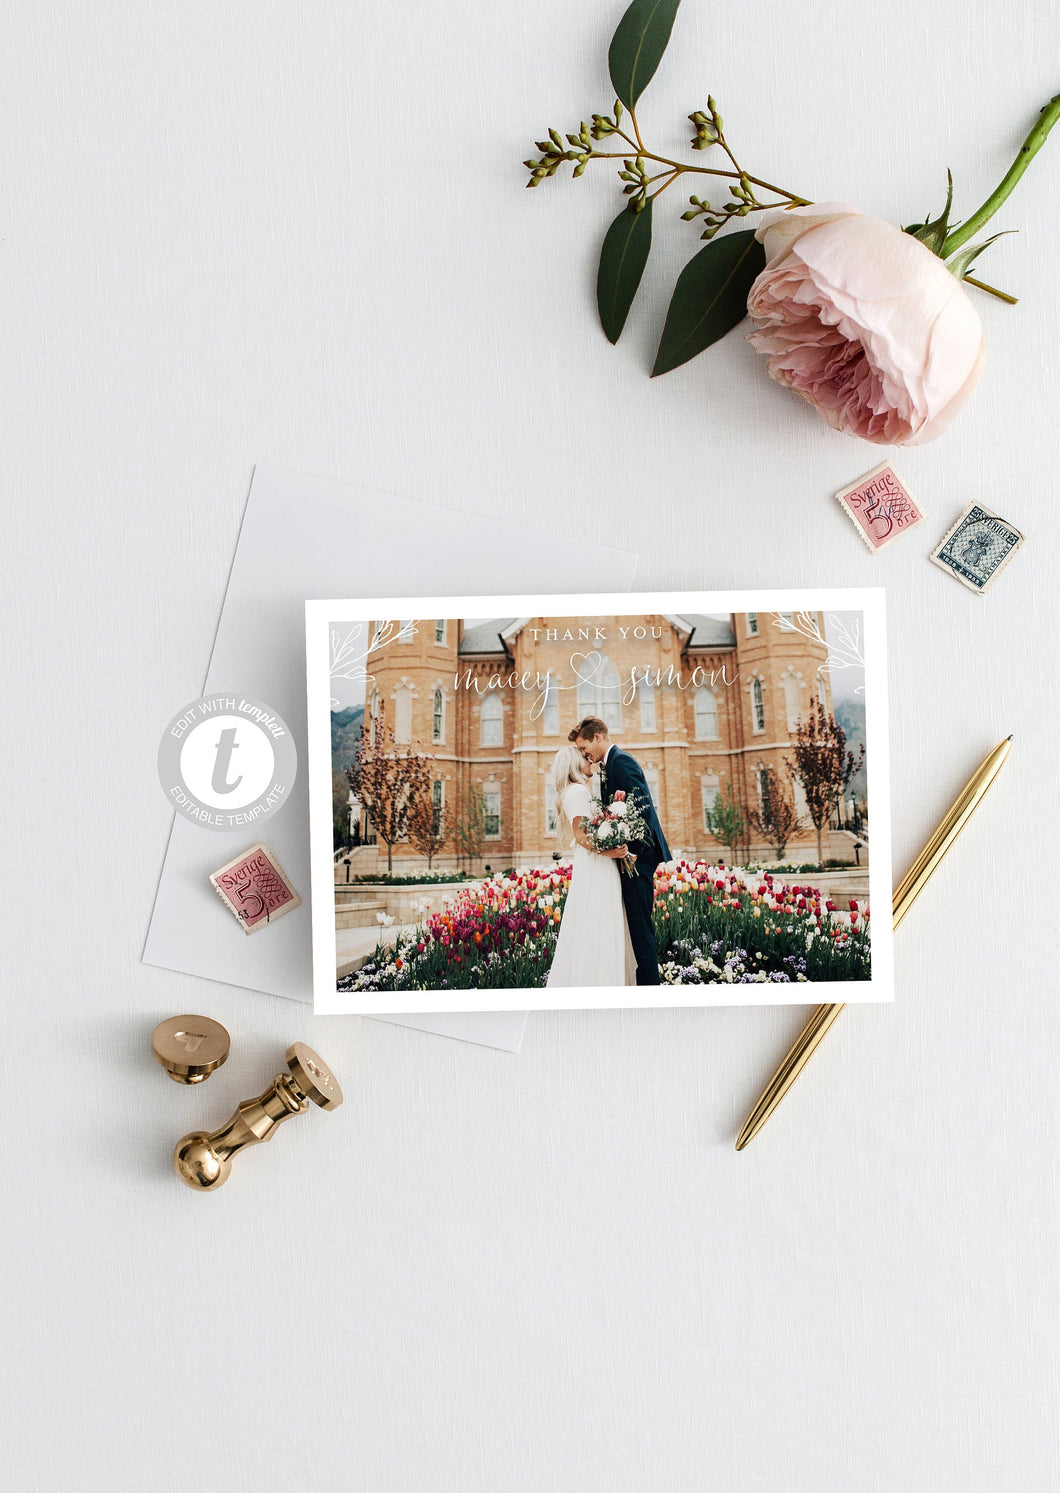 Elegant Wedding Photo Thank You Card, Instant Download, Thank you Cards, Printable Thank You, Wedding Cards, Calligraphy, Heart  - Macey